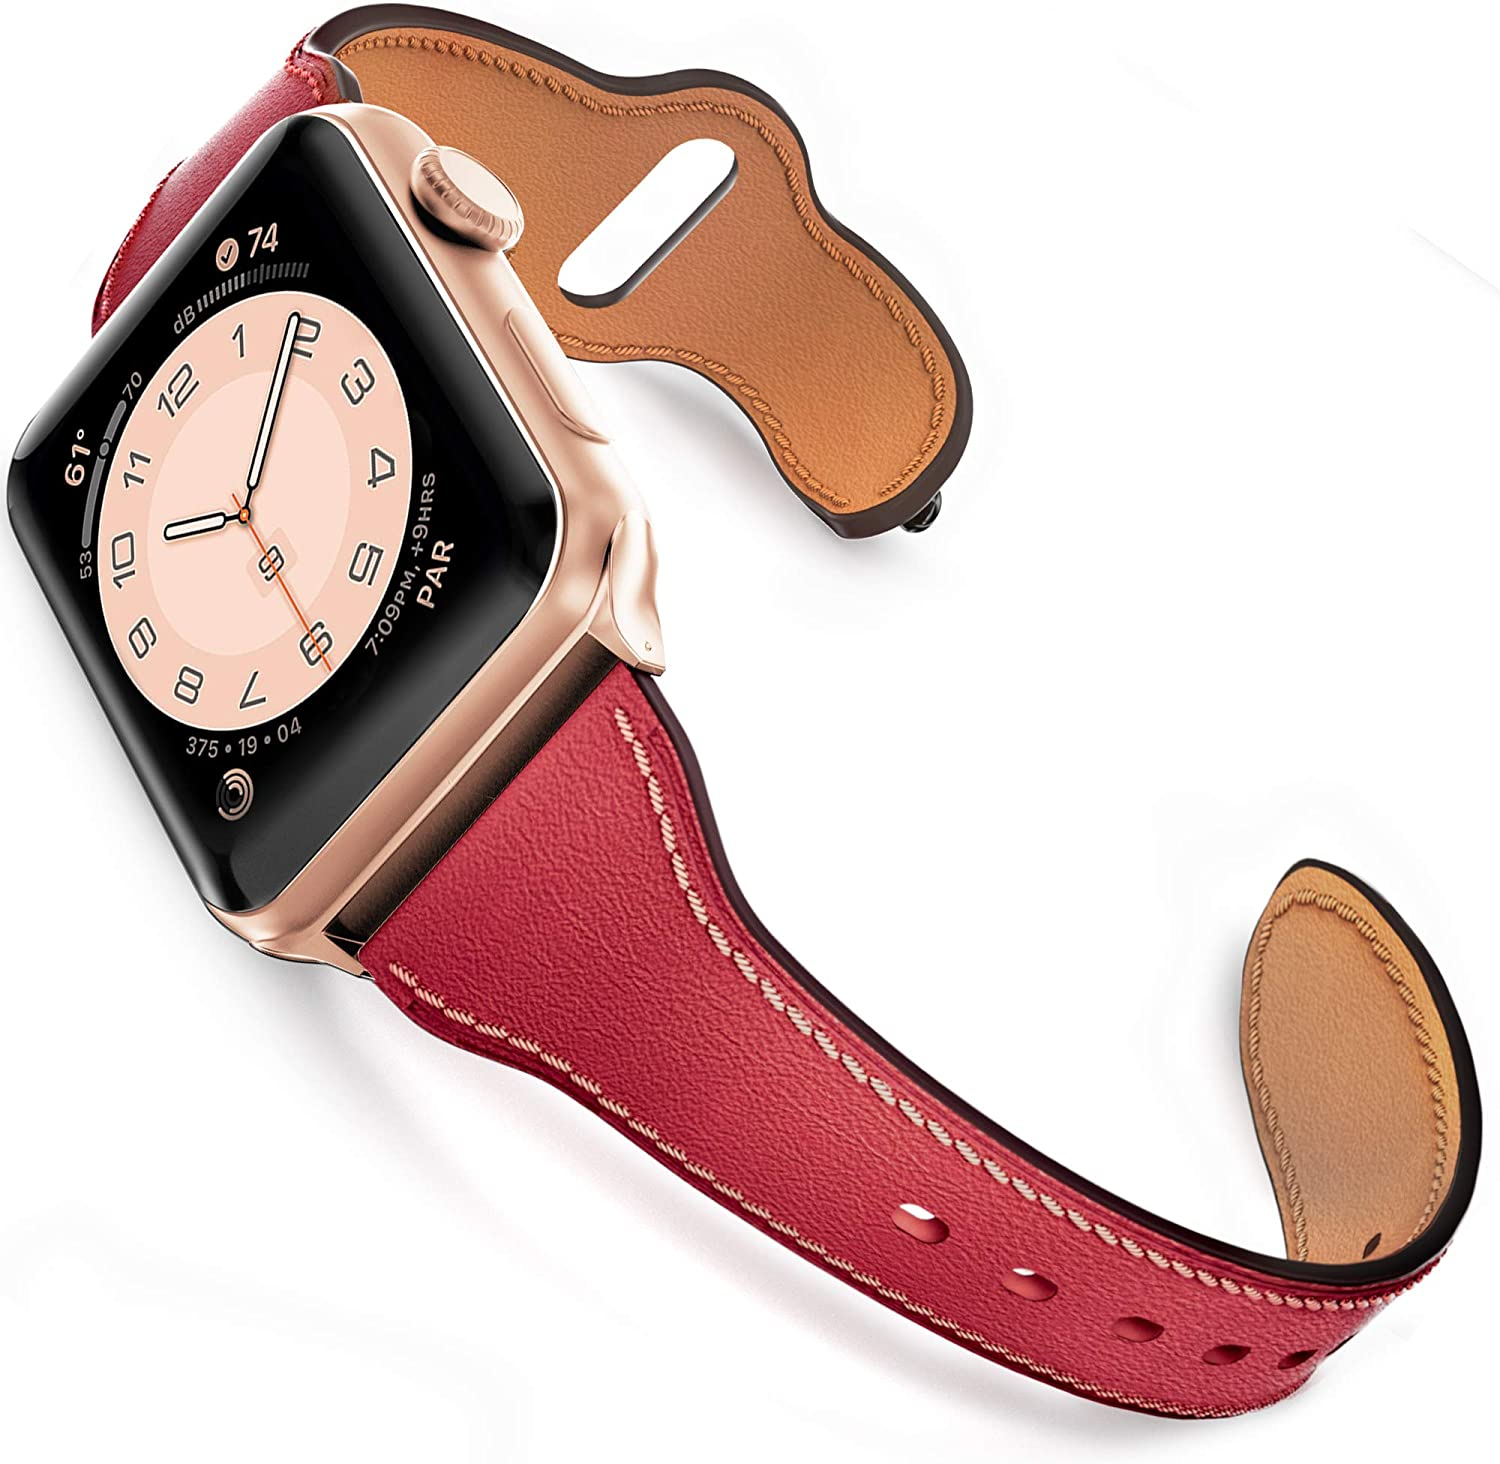 GZ GZHISY Leather Band Compatible for Apple Watch 42mm 44mm, Slim Thin Genuine Leather Narrow Watch Strap Replacement for Women Compatible for iWatch Series 6/SE/5/4/3/2/1, S/M Wine Red